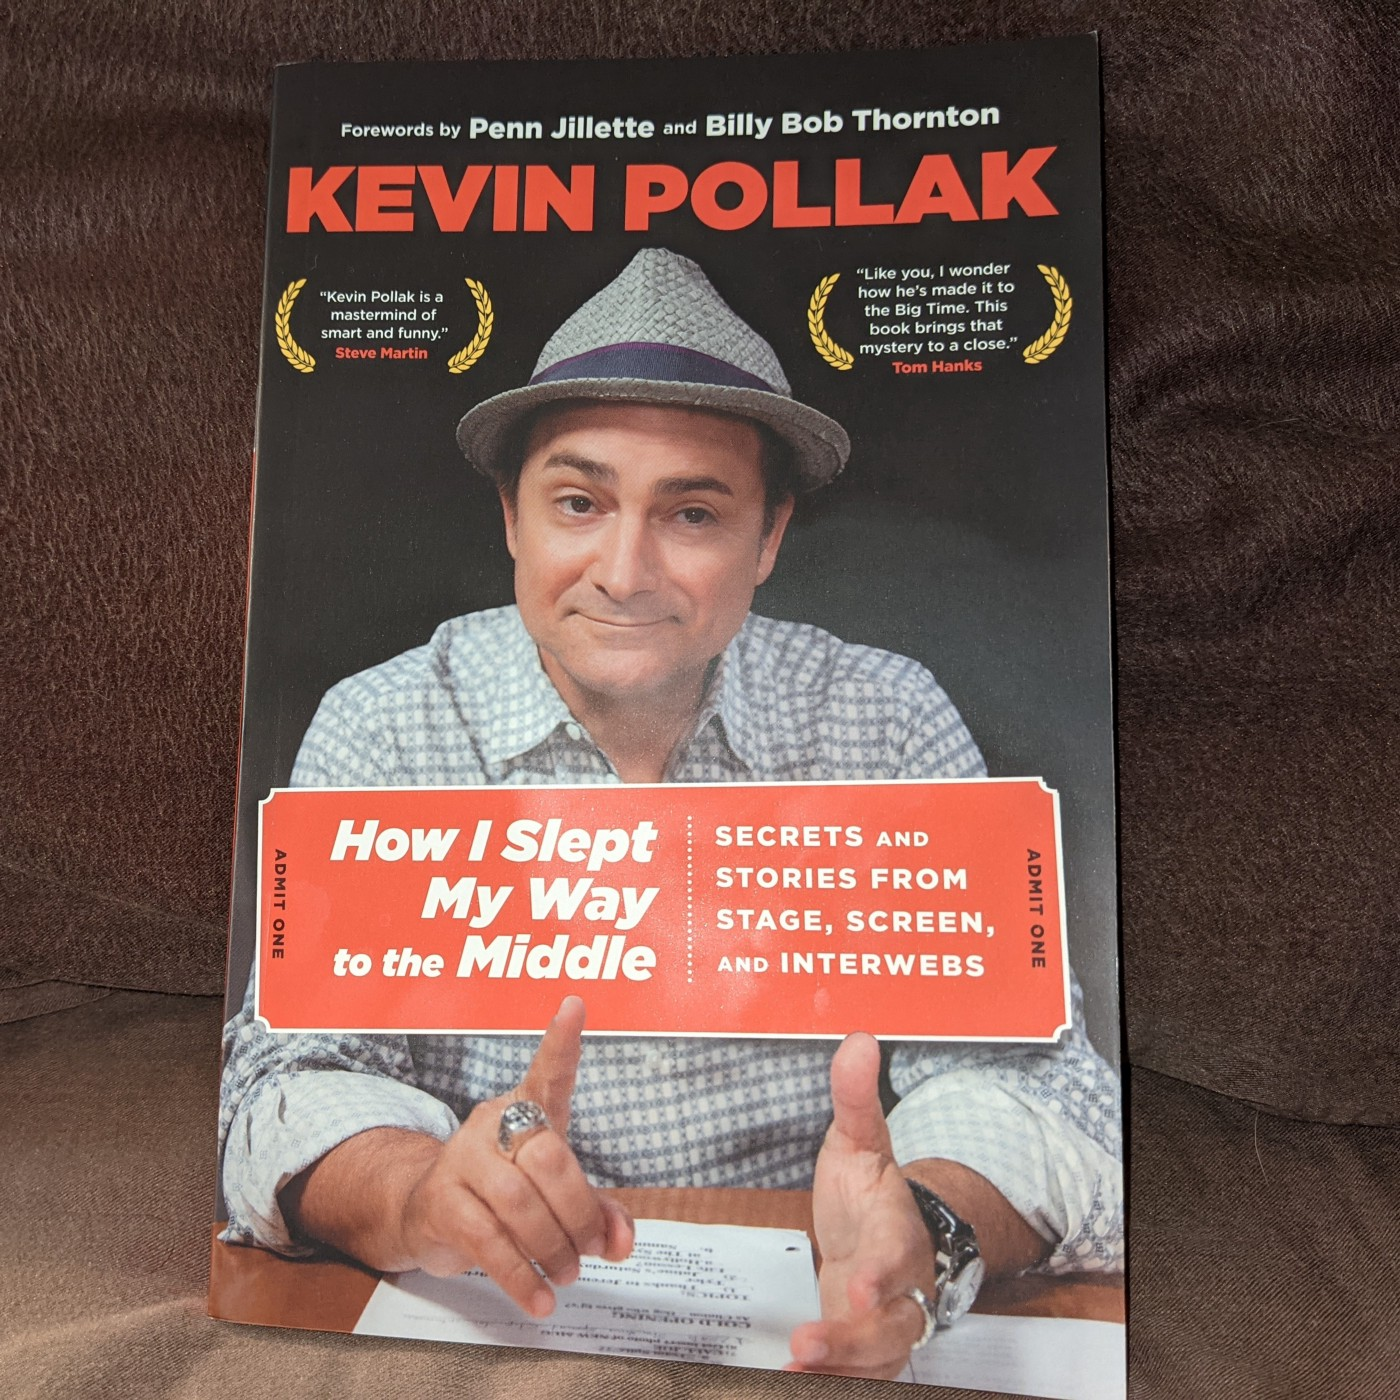 Cover of book by comedian Kevin Pollak